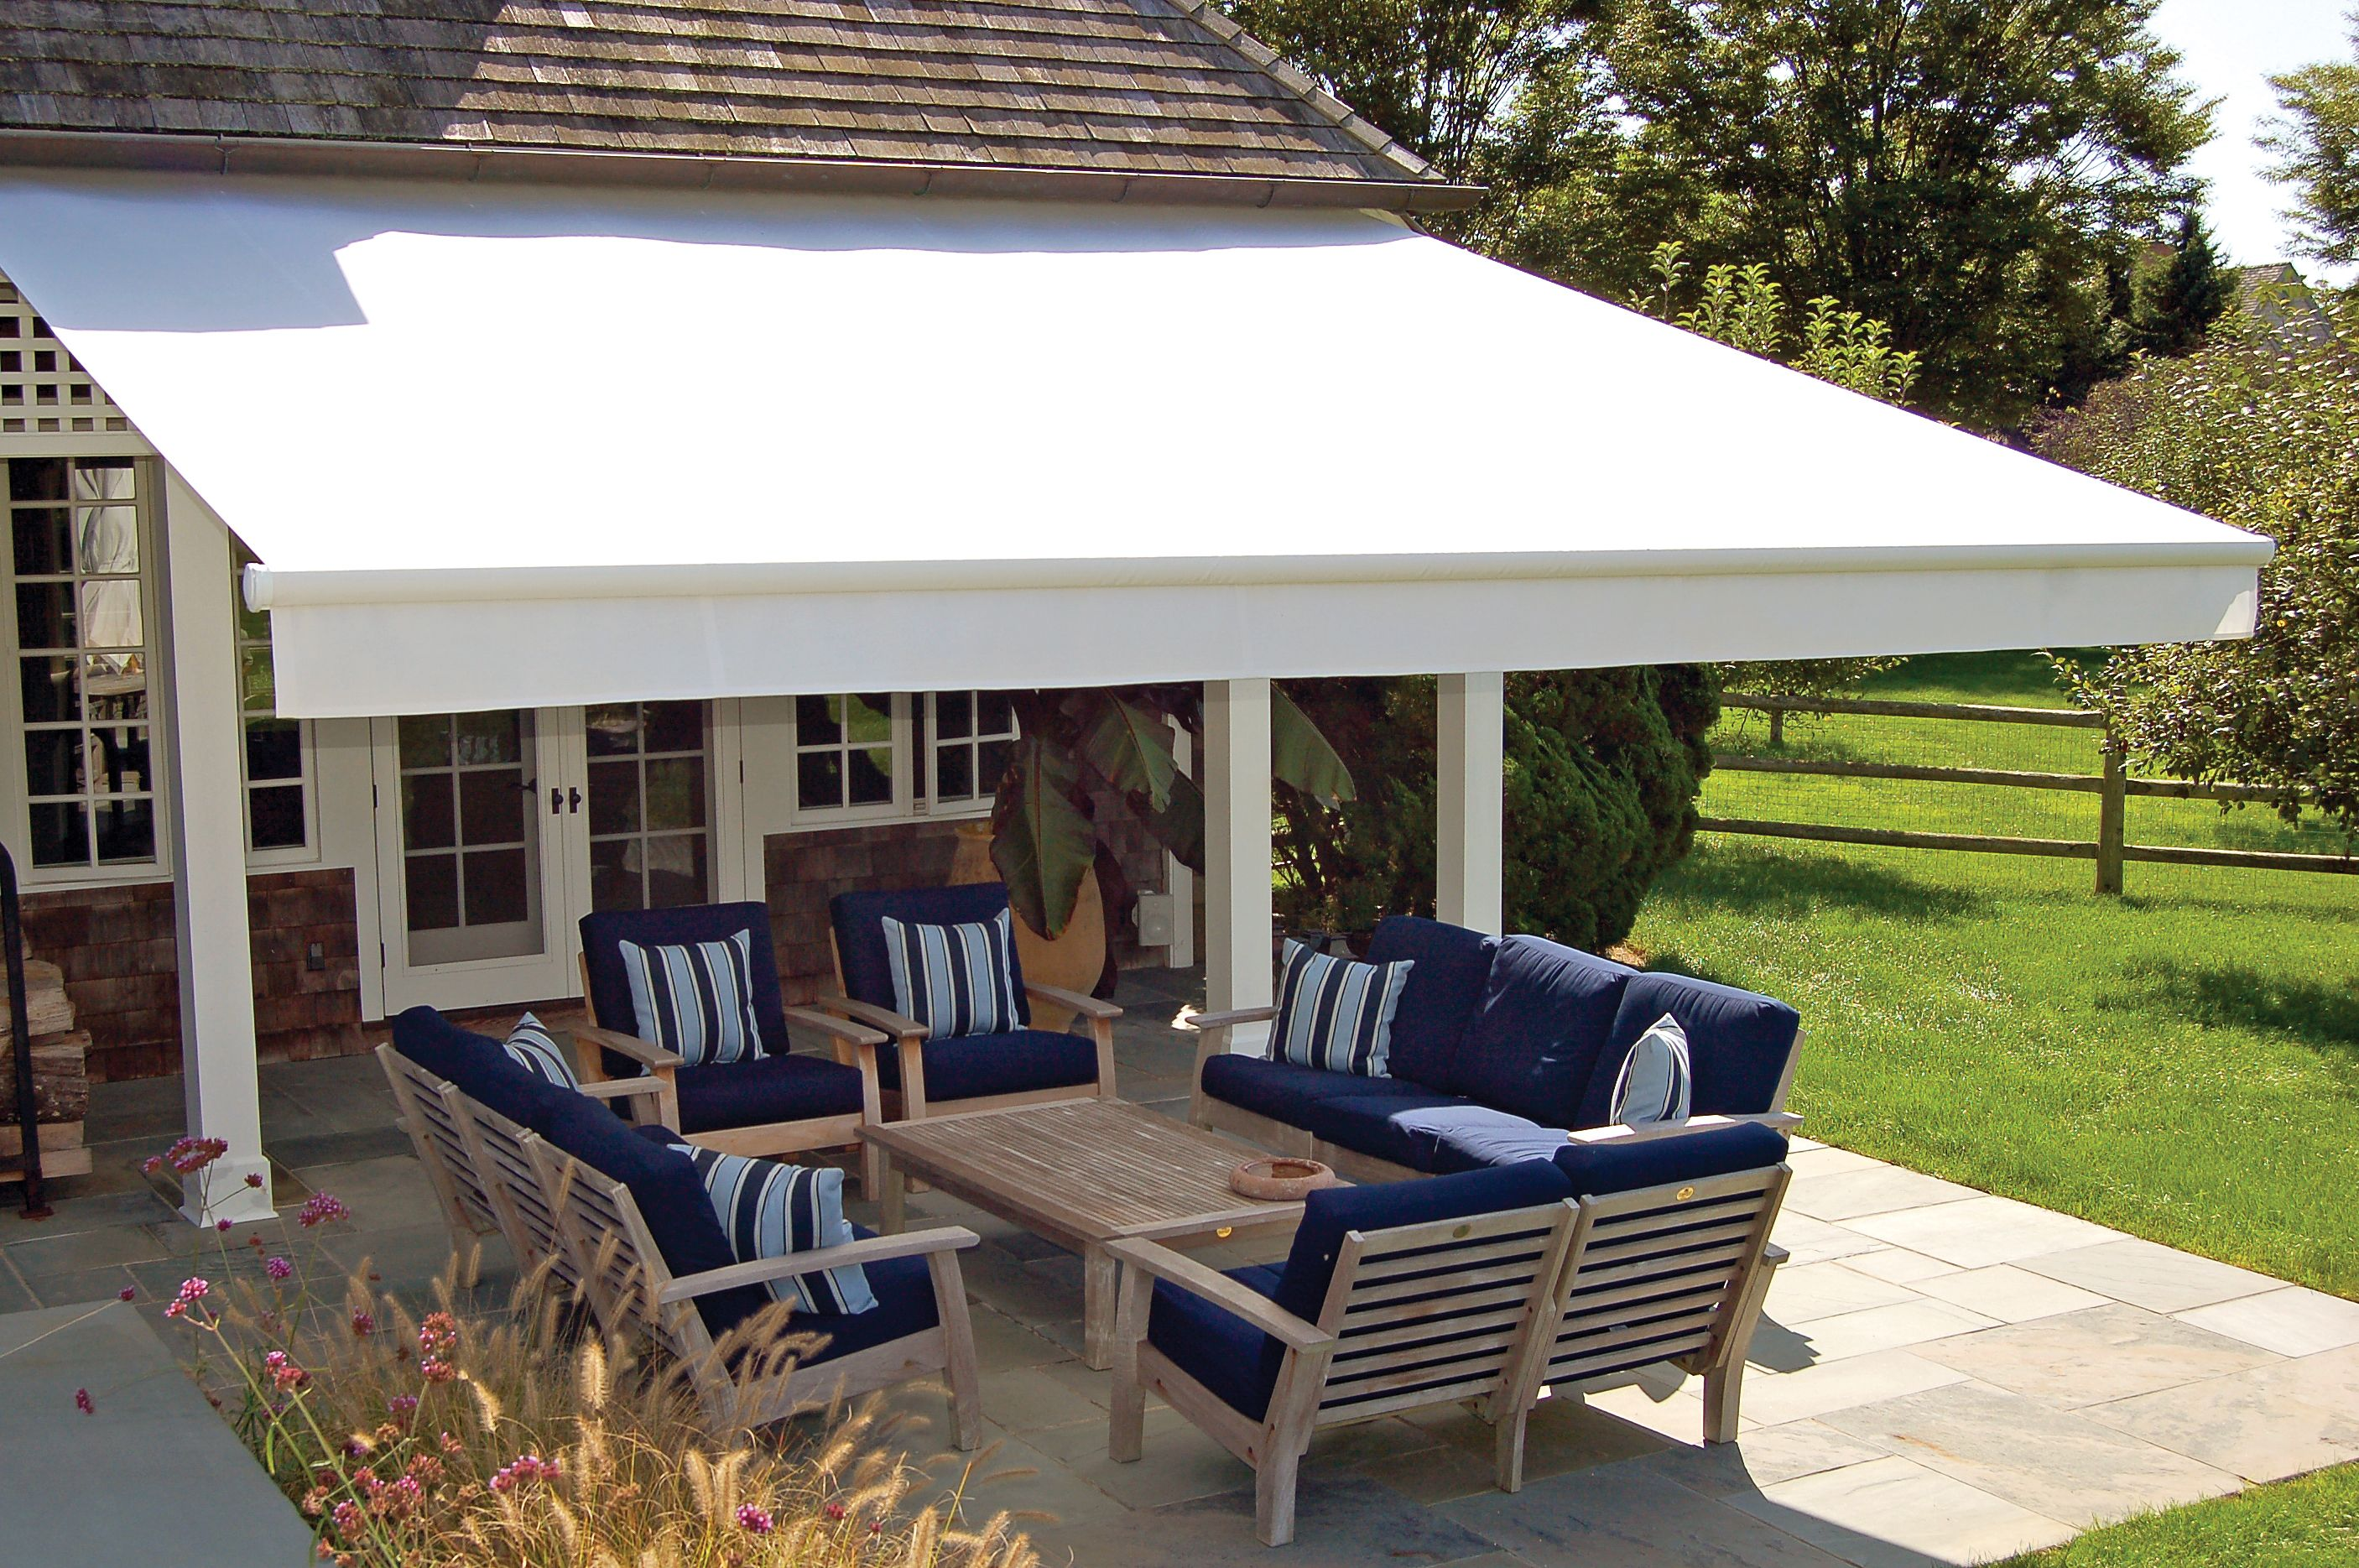 sail home awnings awning awesome of techhungry free line decor for patio patios